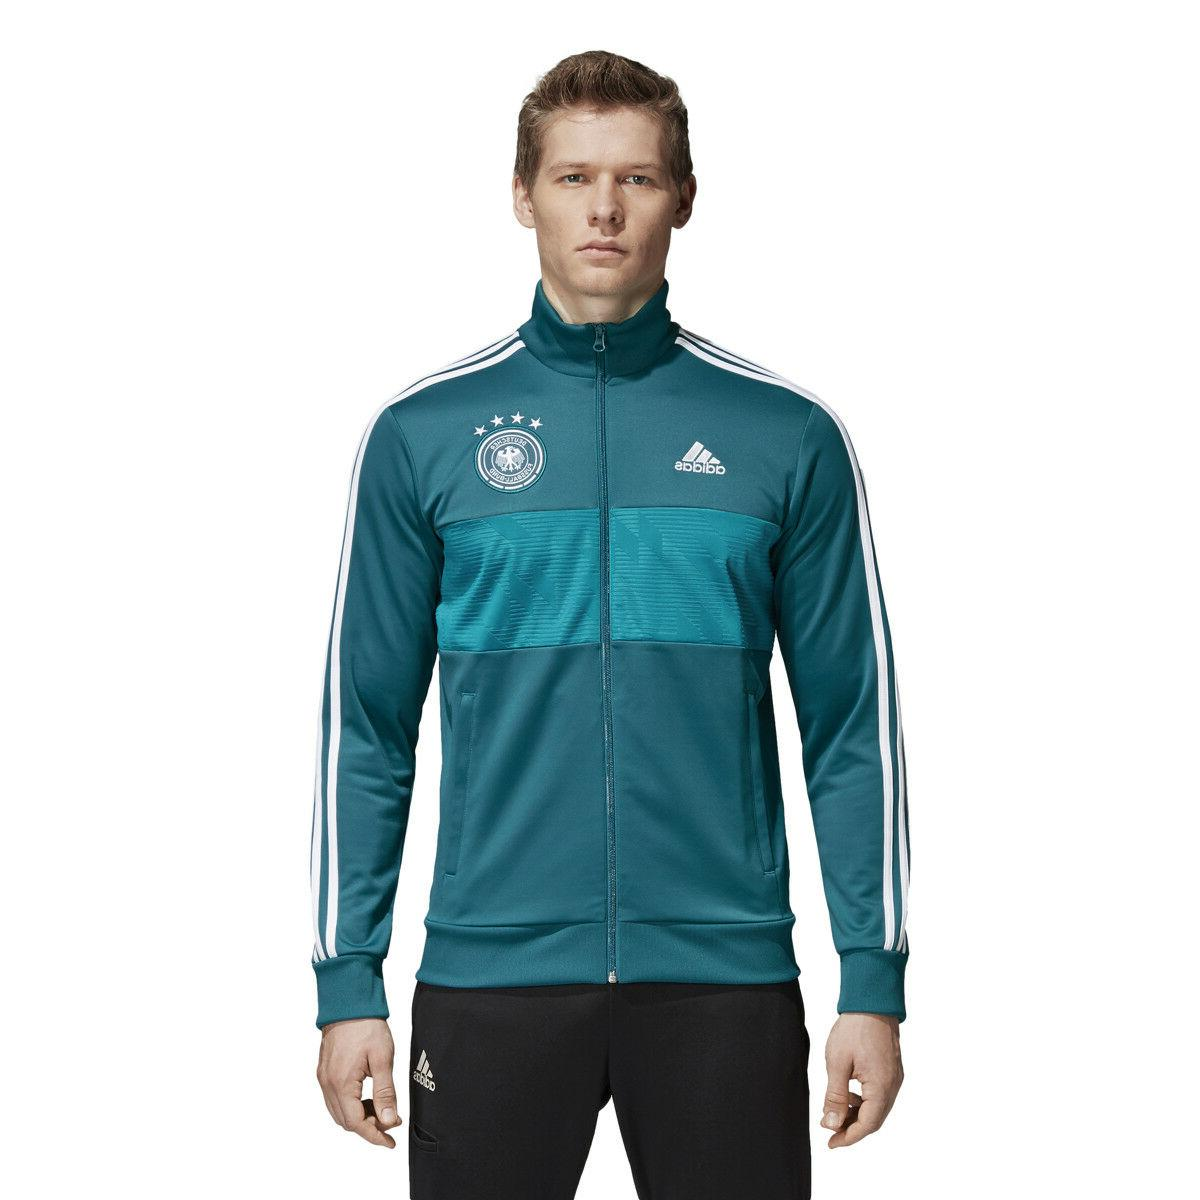 Adidas 2018 Men's Soccer Germany World Cup Track Suit Jacket